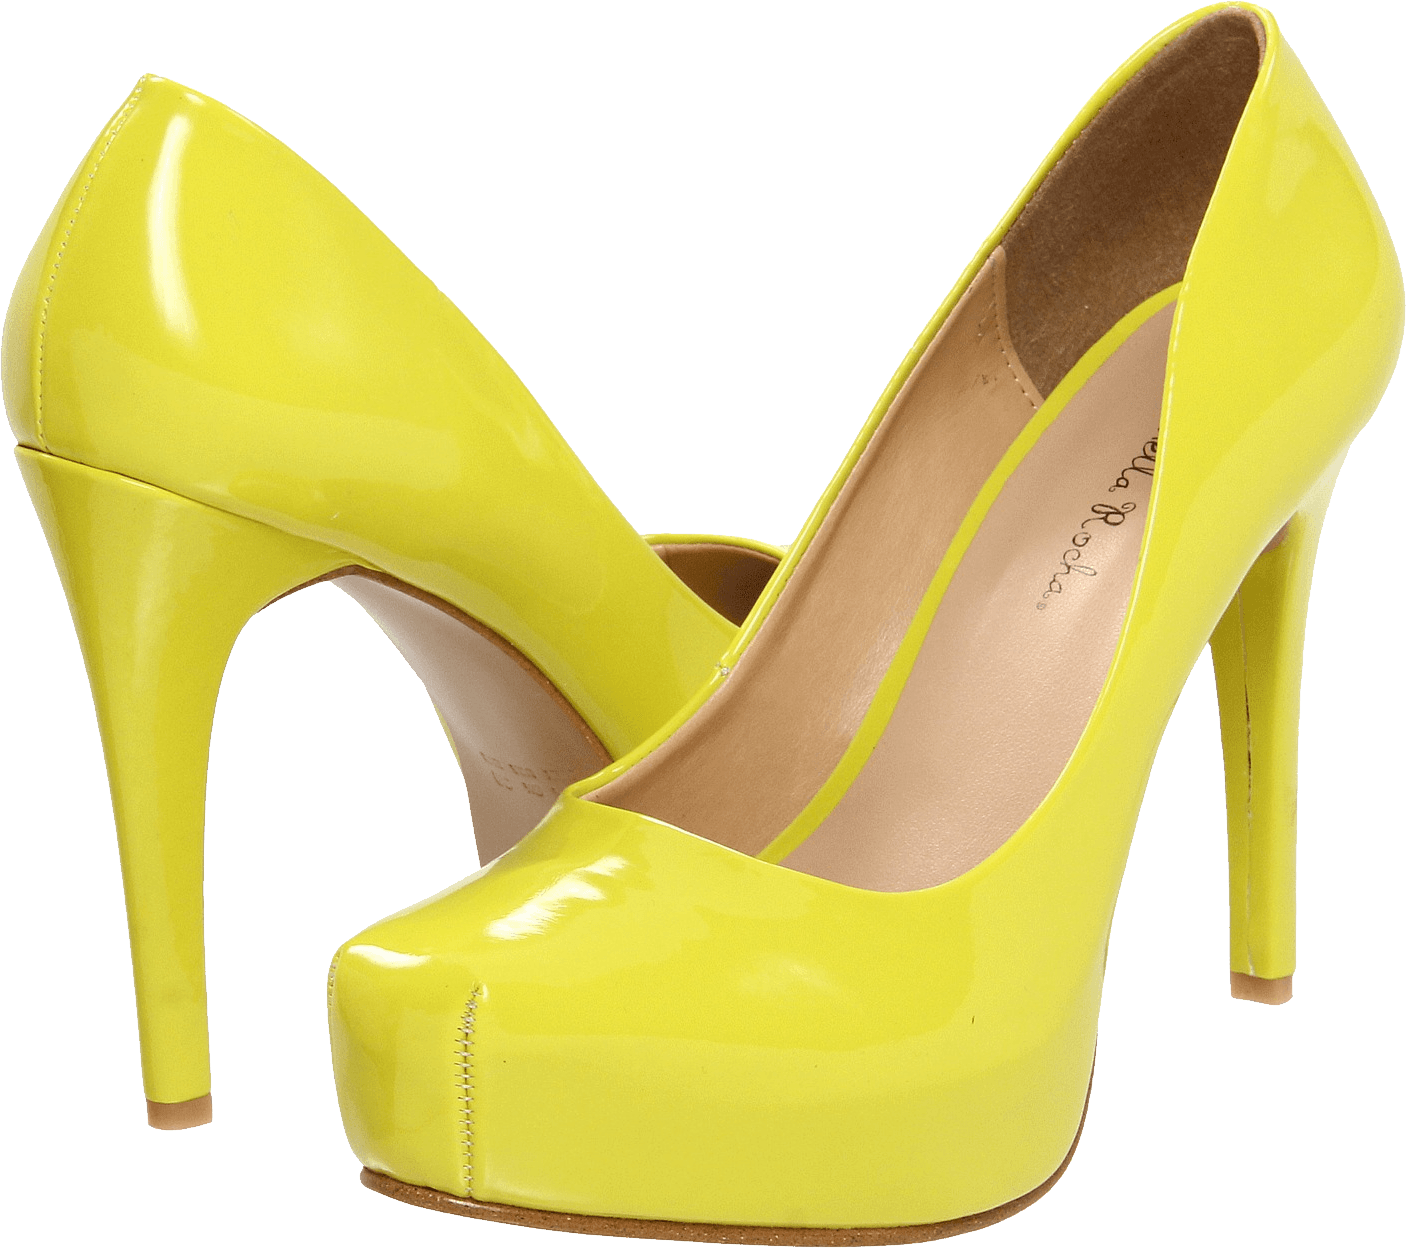 Yellow Women Shoes Png Image PNG Image